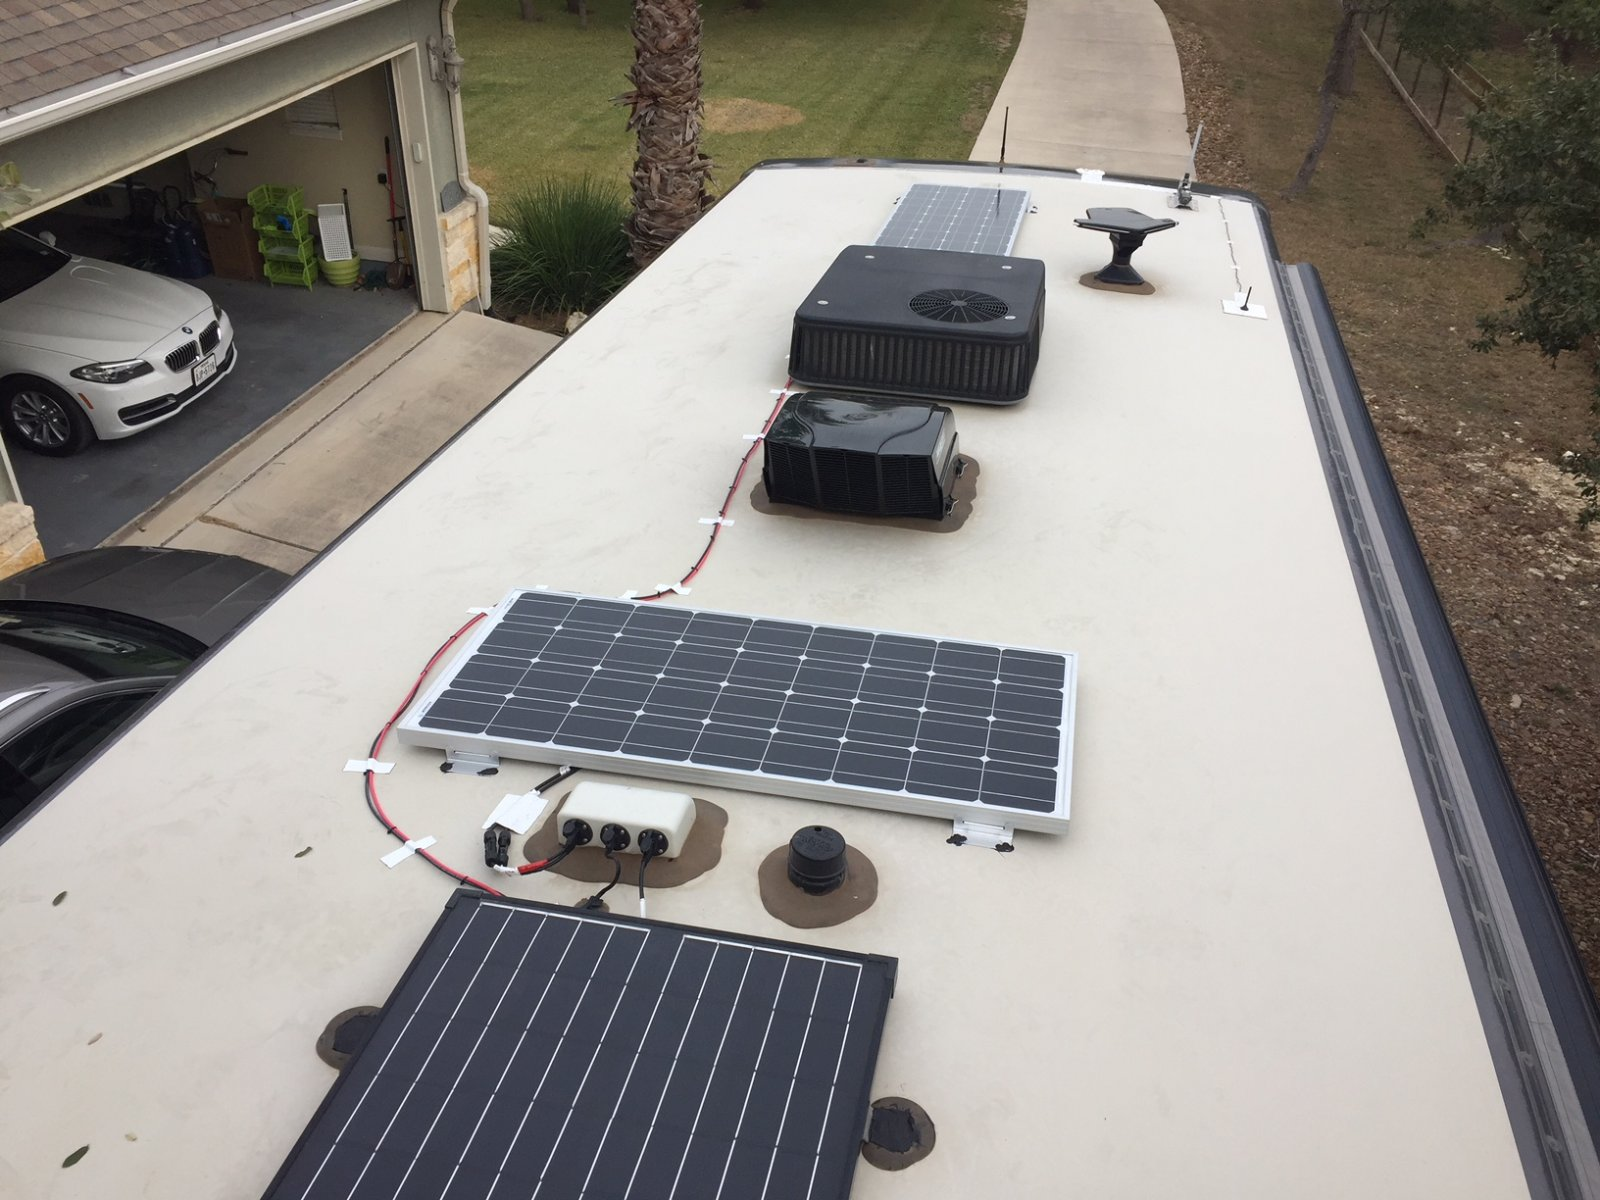 Click image for larger version  Name:RV Solar3.jpg Views:28 Size:265.7 KB ID:169930